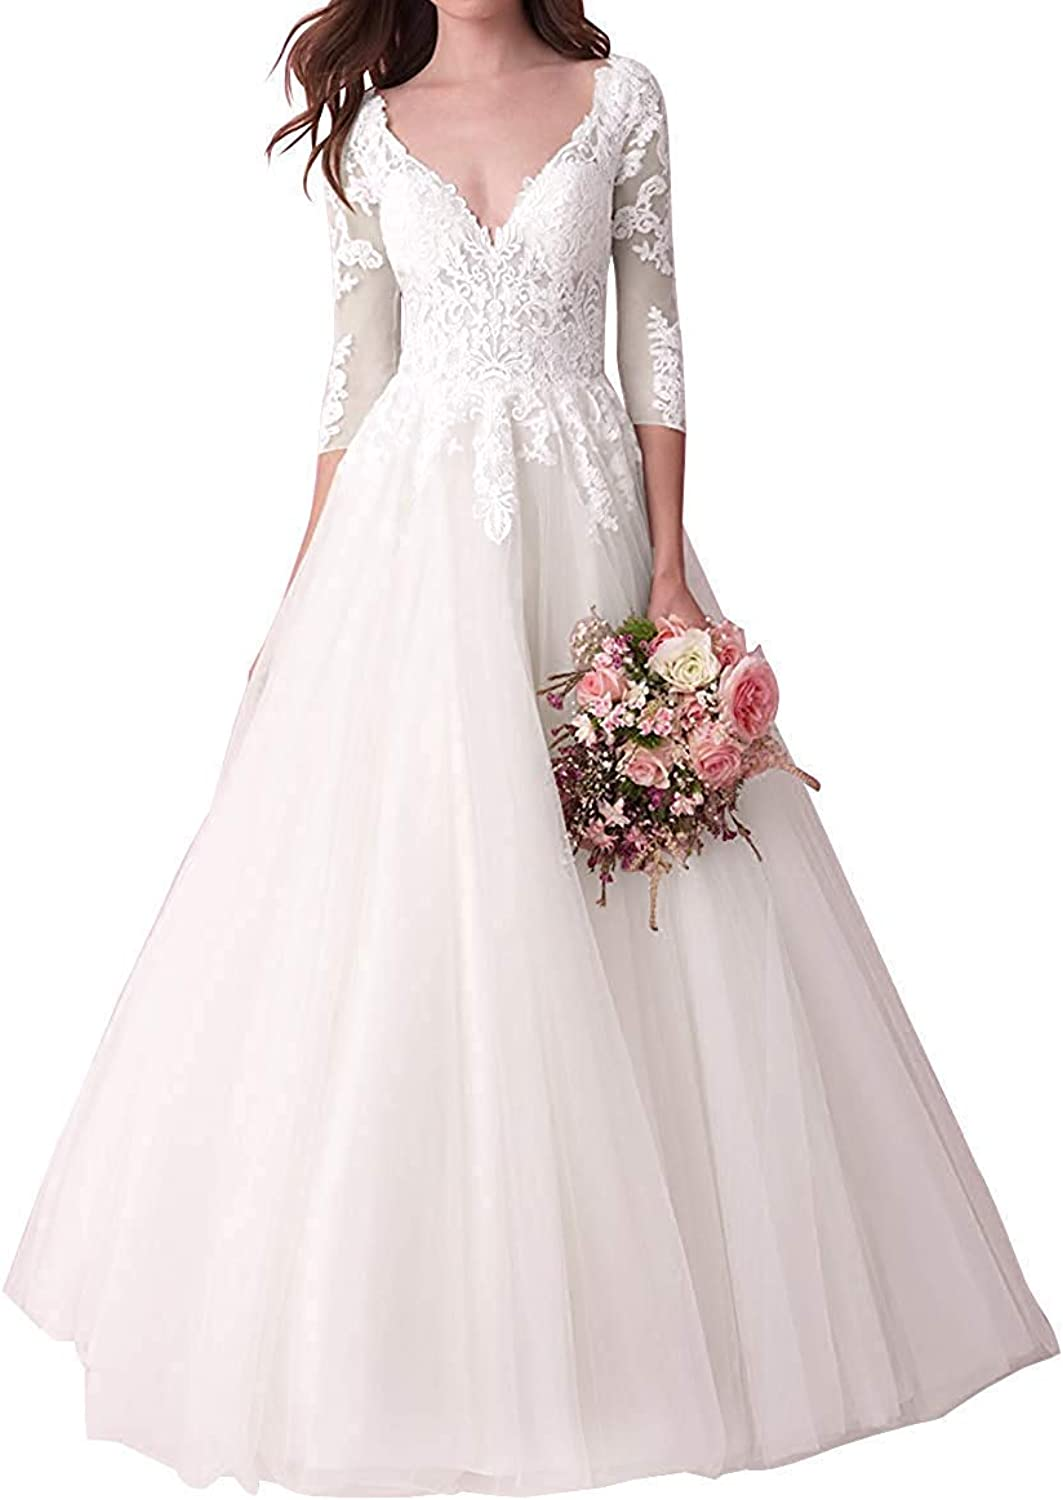 Wedding Dress with Long Sleeve Bride Bridal Dresses Lace Wedding Gowns V Neck